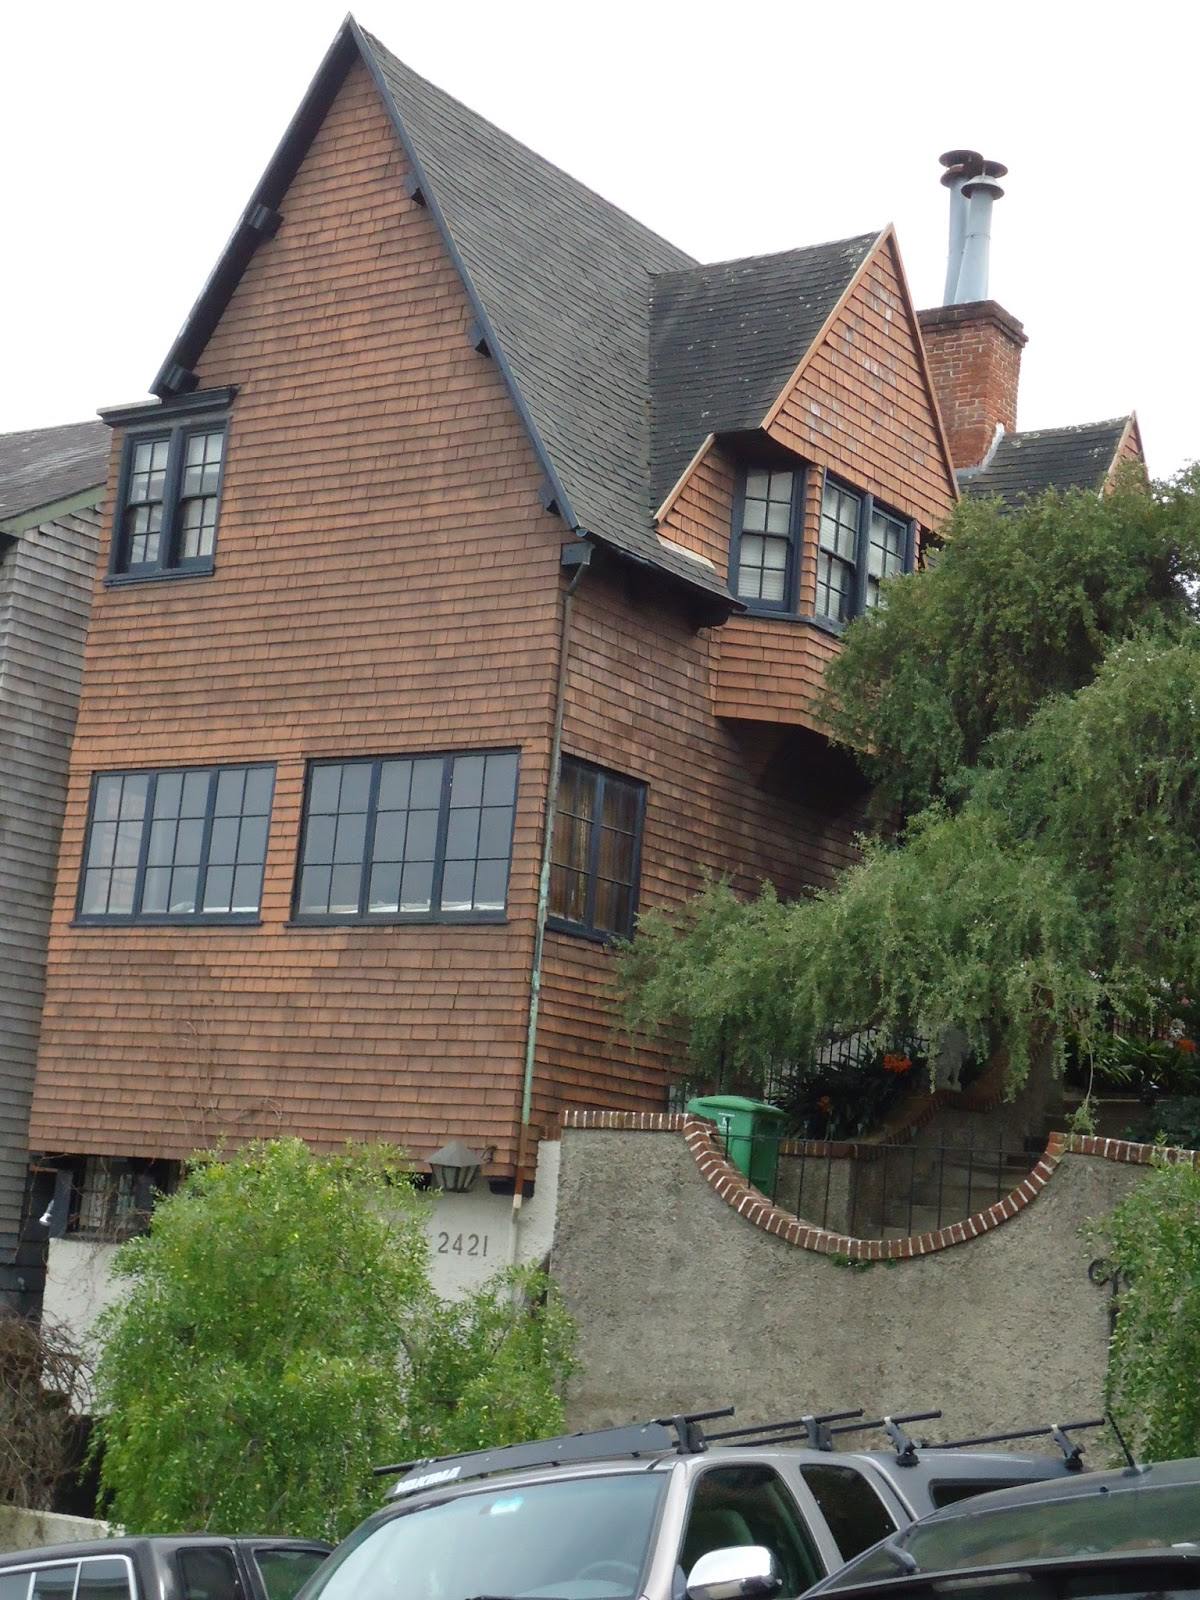 Note the shingled dormers and the steeply sloped roof whose shingles comprise more than half of the homes facade coxhead built a house for himself right